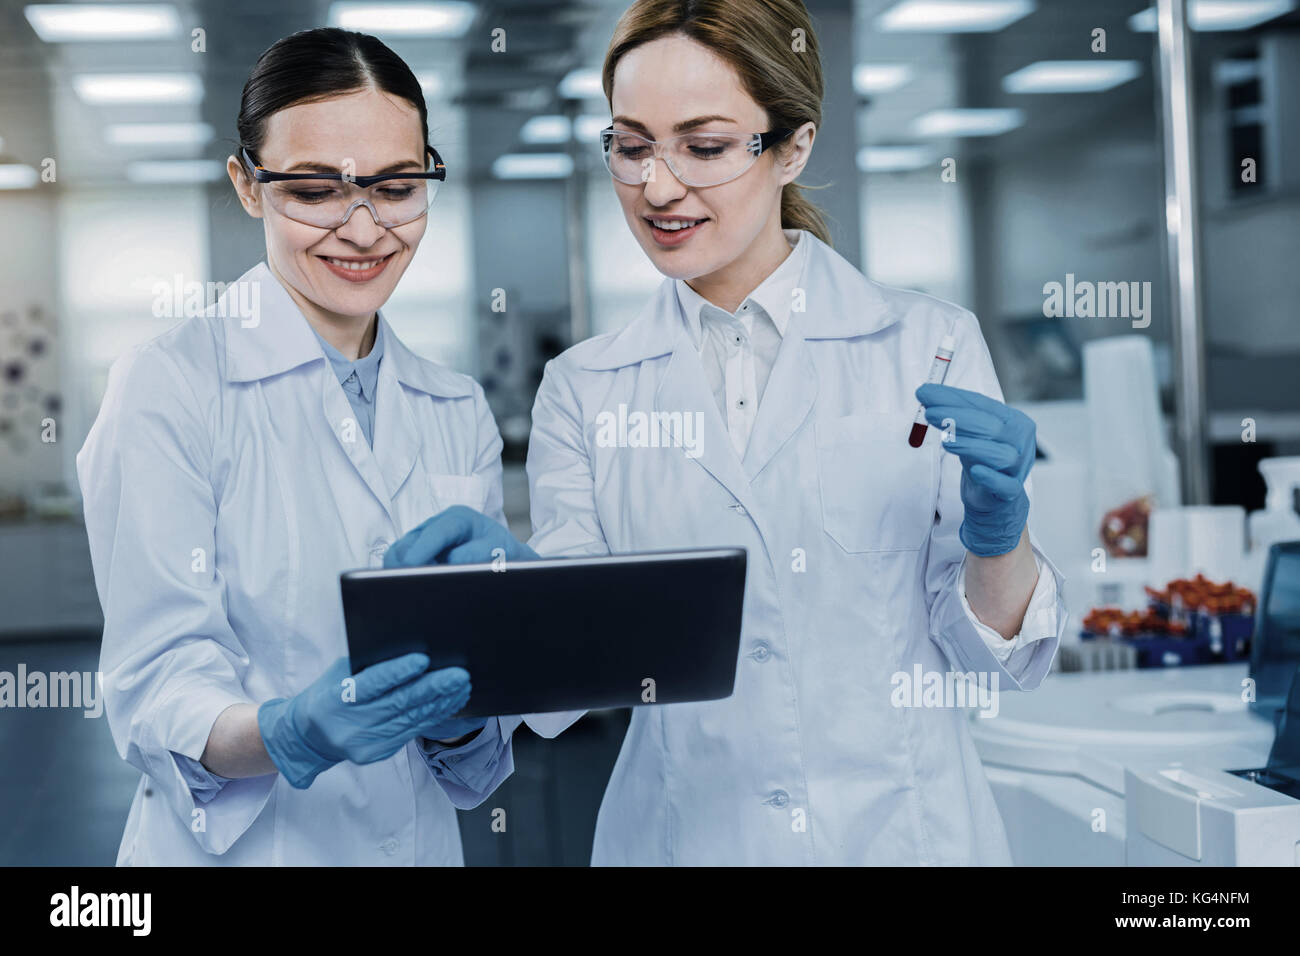 Joyful positive woman working together with colleague - Stock Image